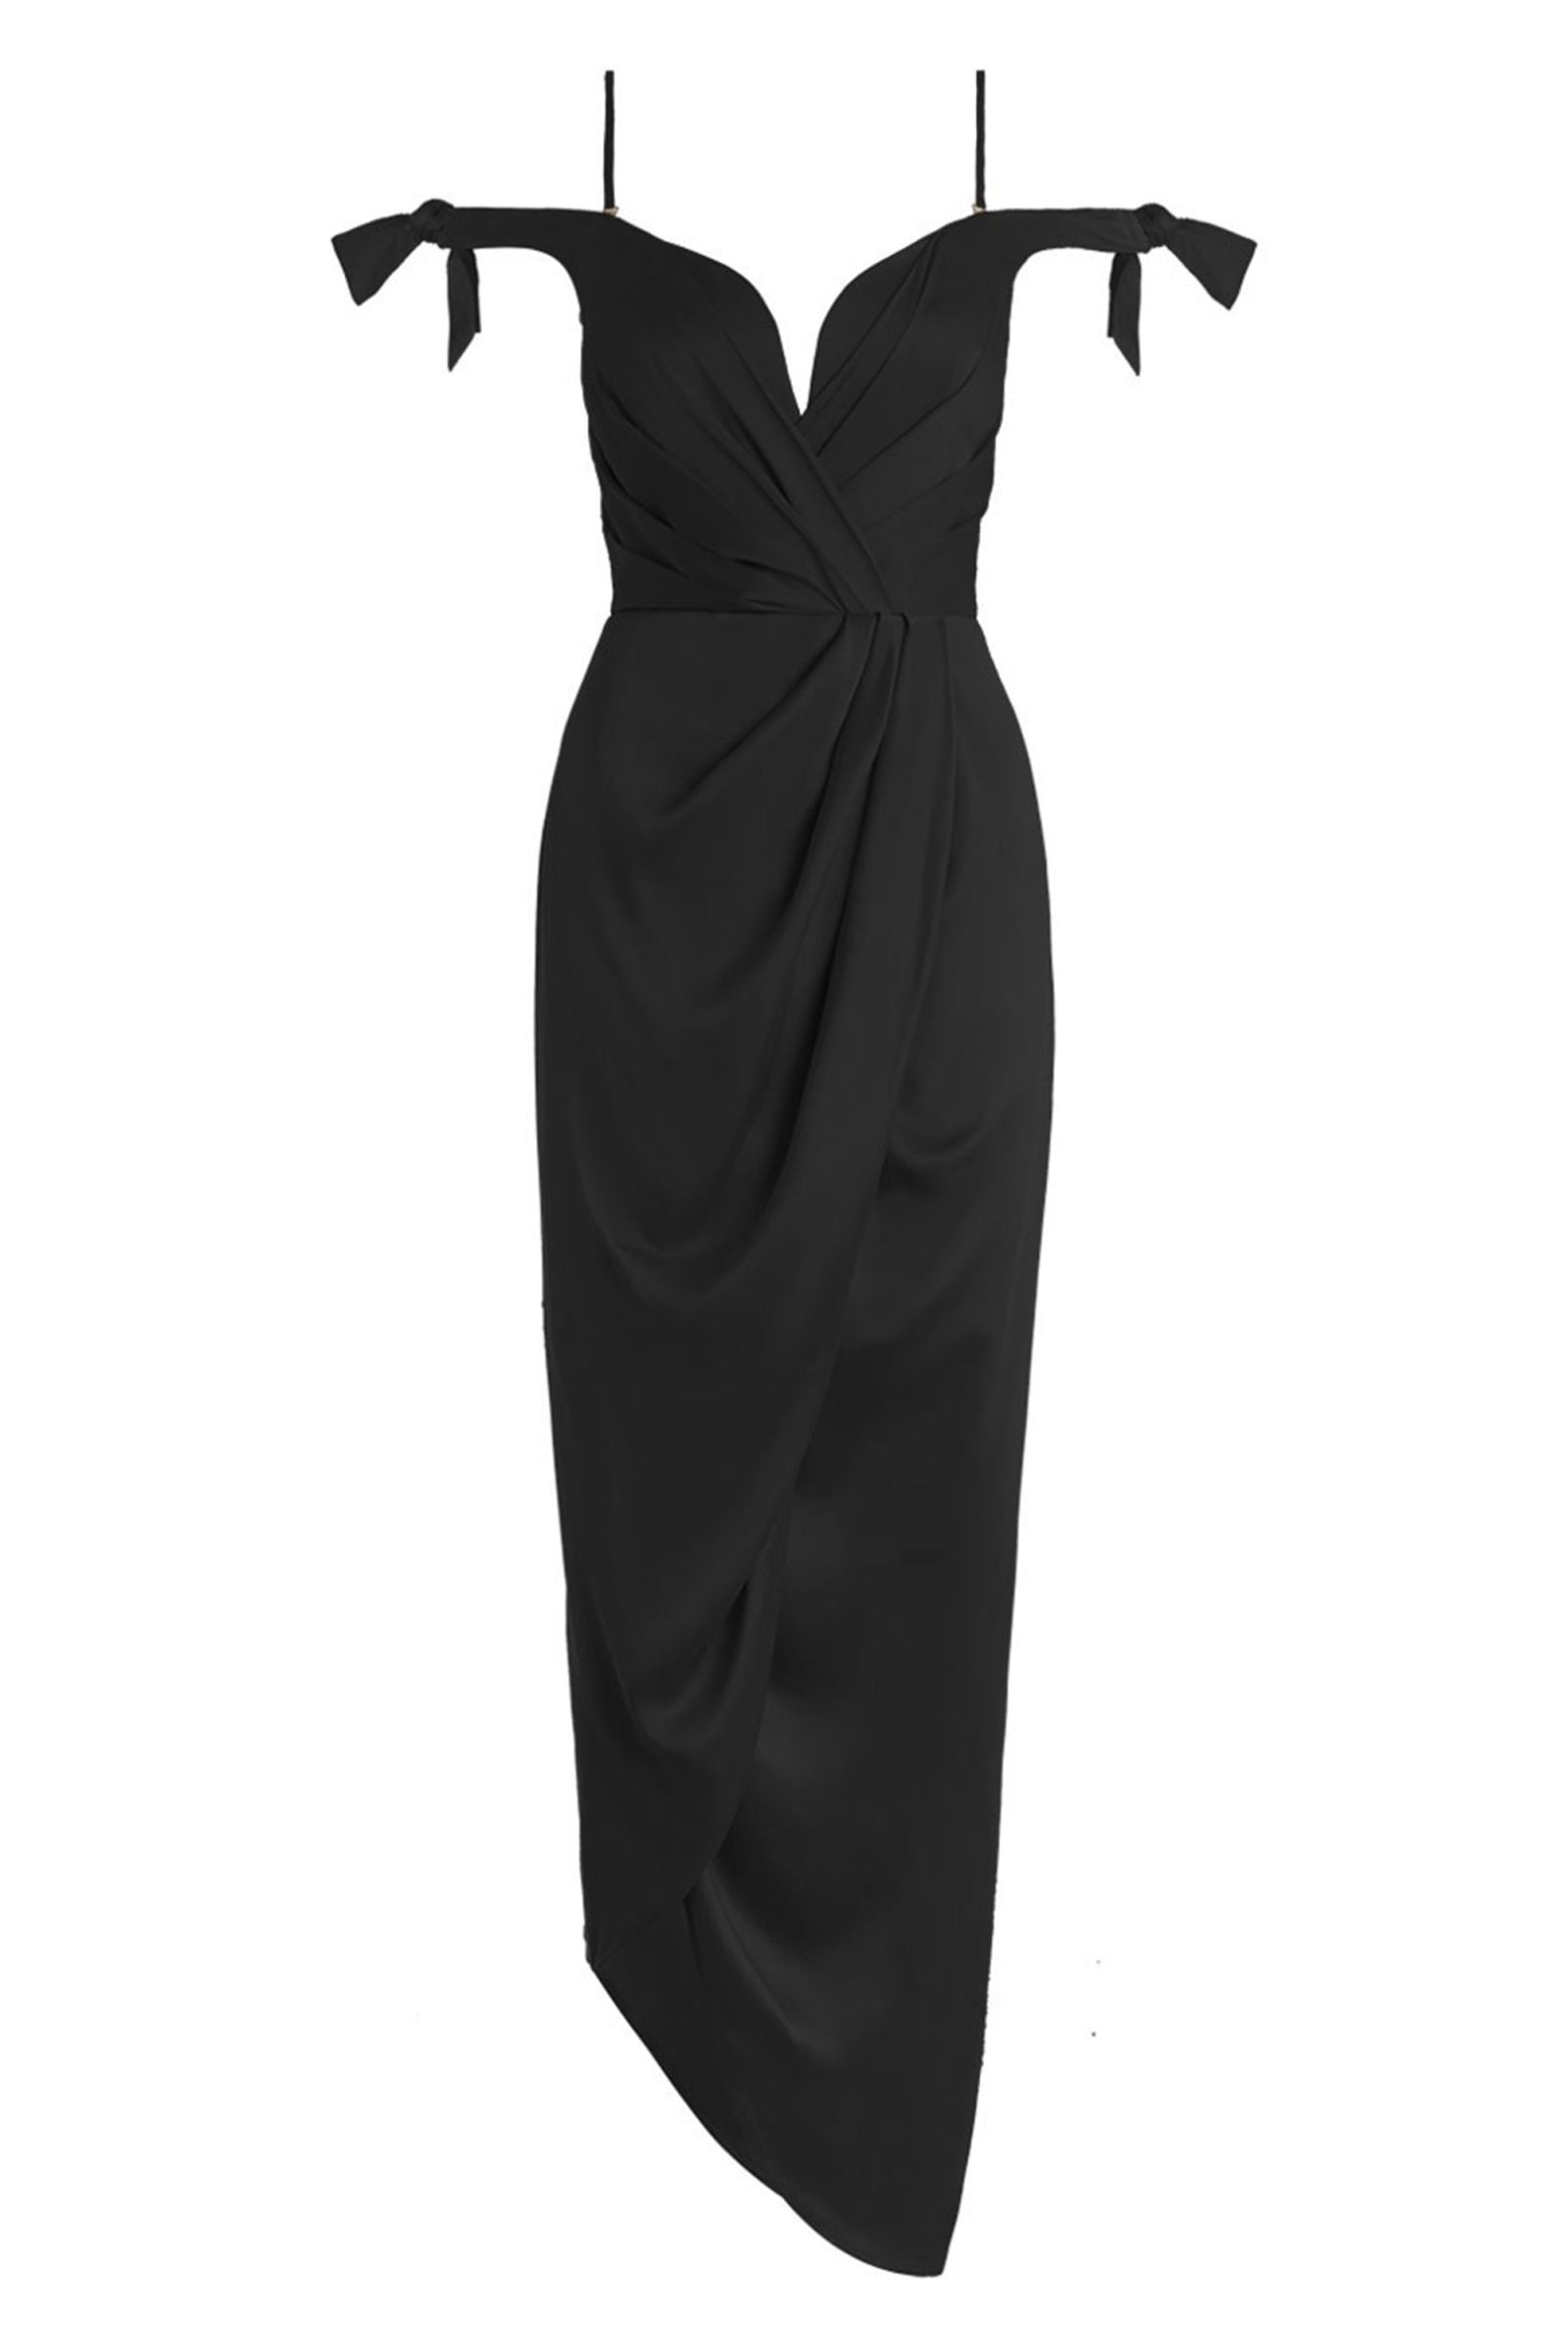 Dress to wear at a wedding   Dresses to Wear to a Winter Wedding  Winter weddings Winter and